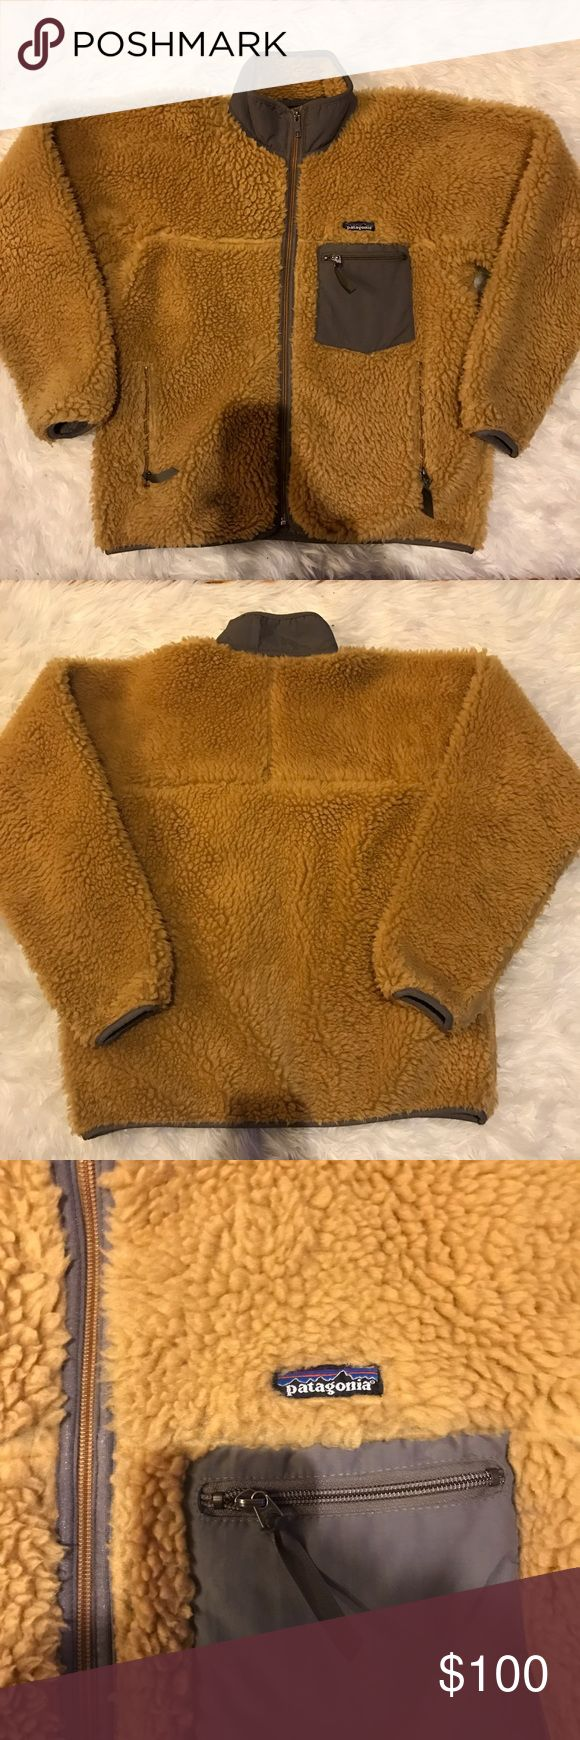 Patagonia retro X jacket. GREAT condition. Size M Patagonia retro X jacket. Super cool dark mustard color. In great condition. Size medium, would definitely fit a large as well Patagonia Jackets & Coats